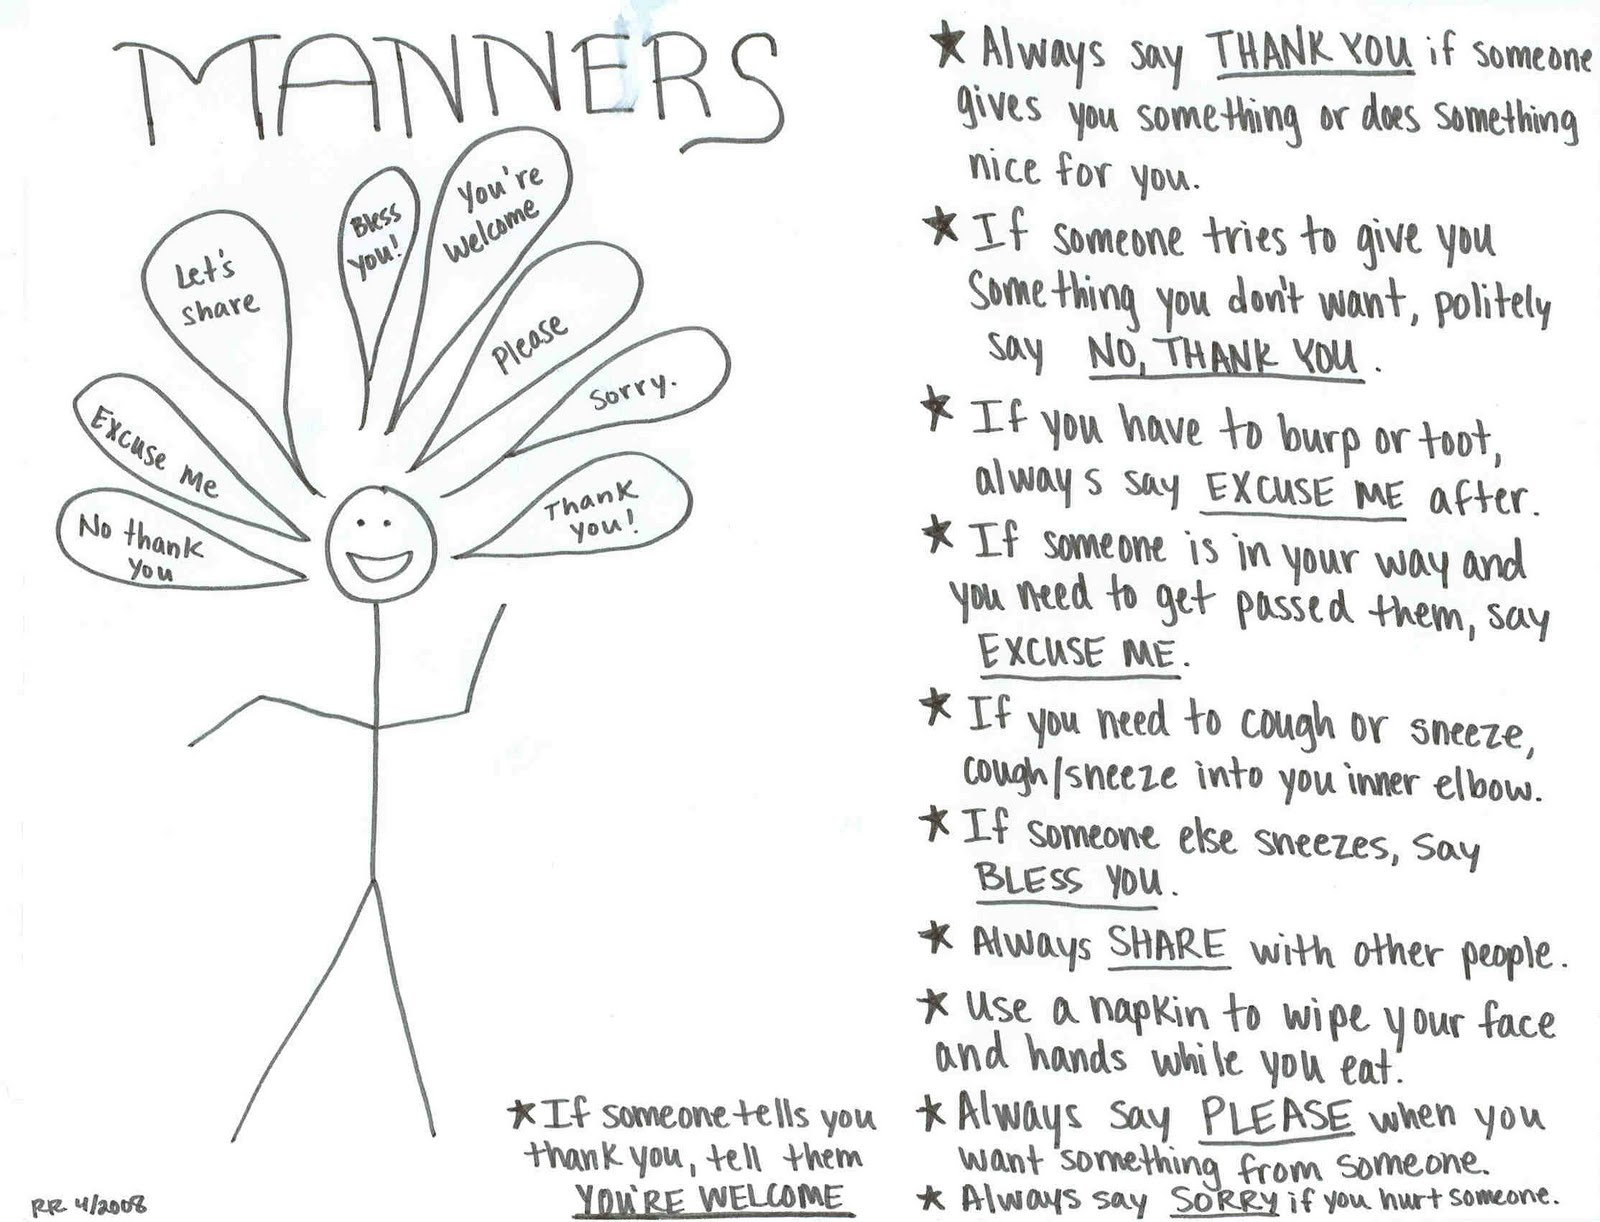 Heaps Of Laundry Theme Of The Week Manners